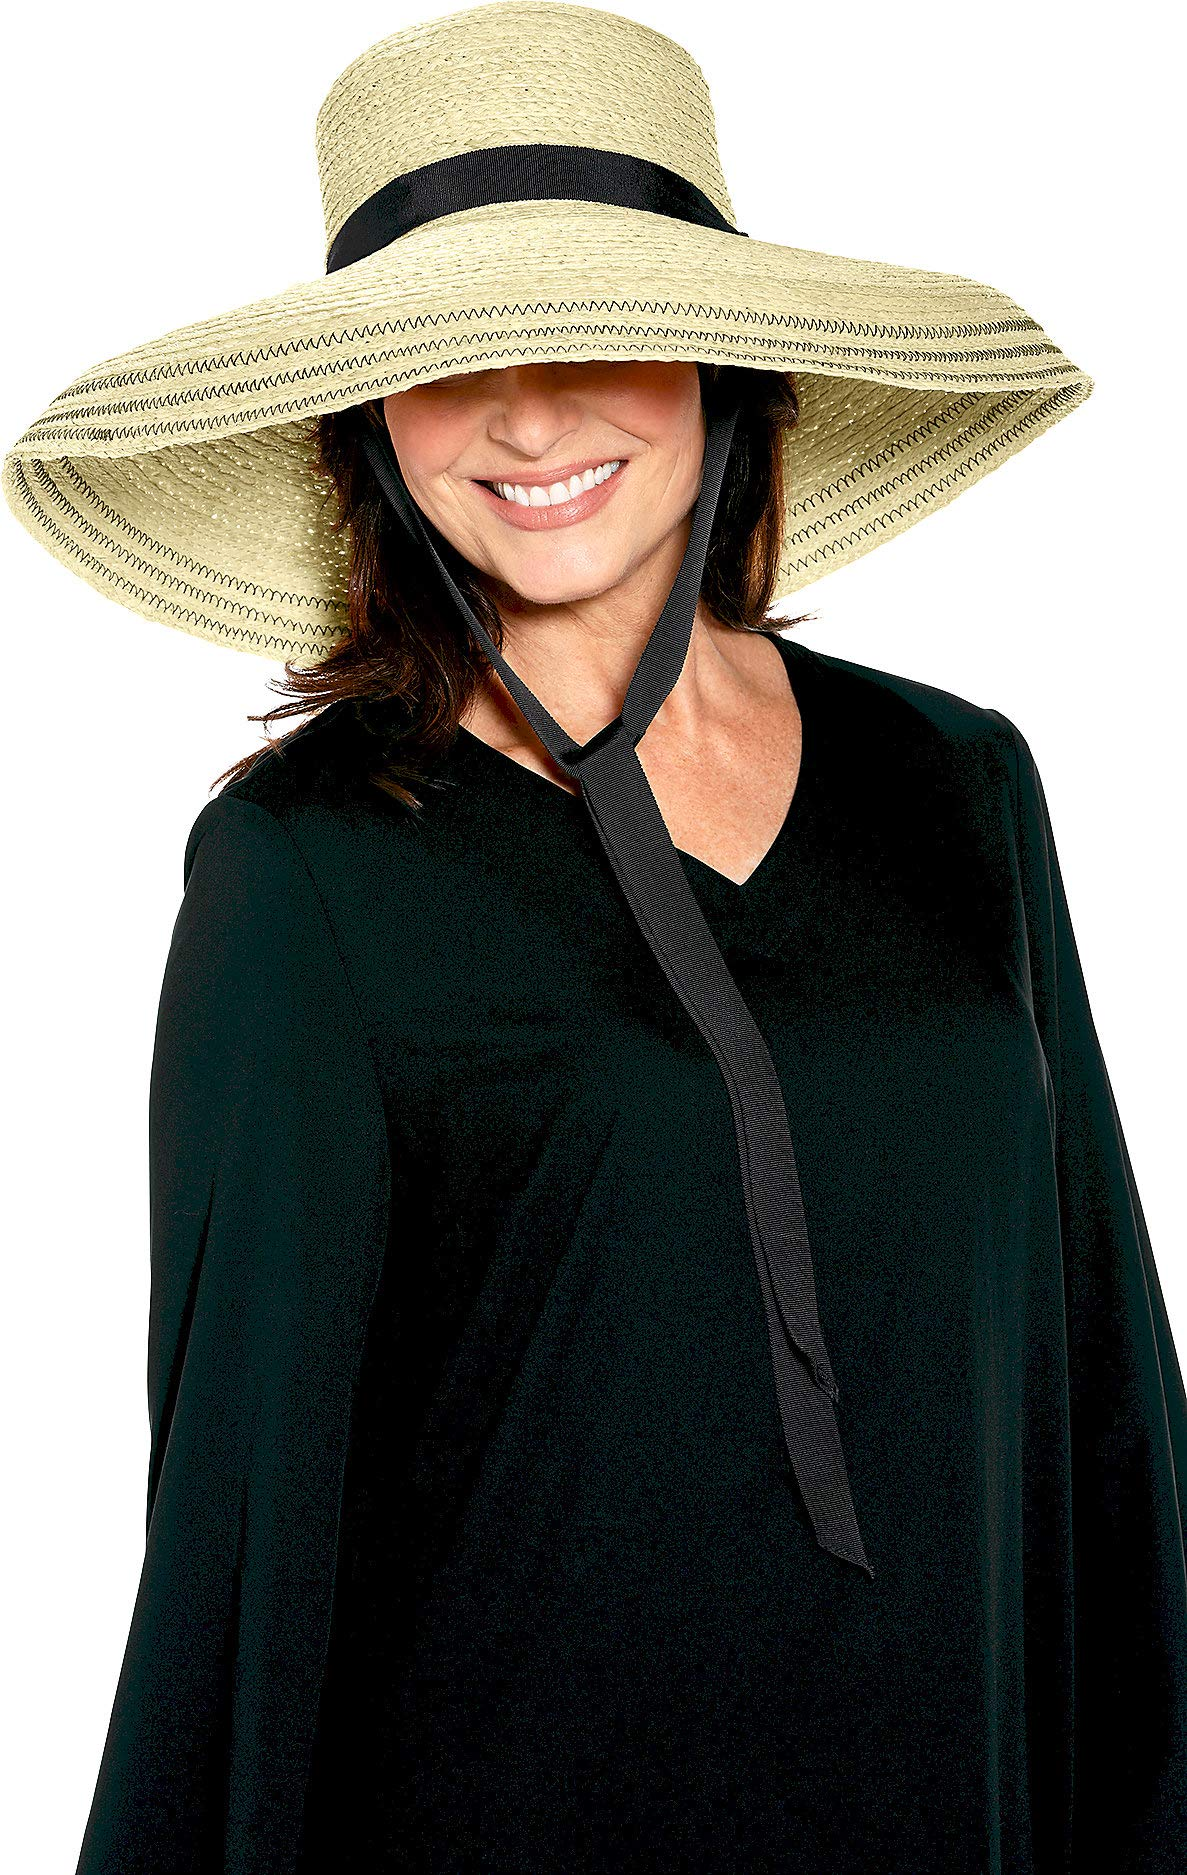 Coolibar UPF 50+ Women's Loren Fabulous Sun Hat - Sun Protective (One Size- Natural)